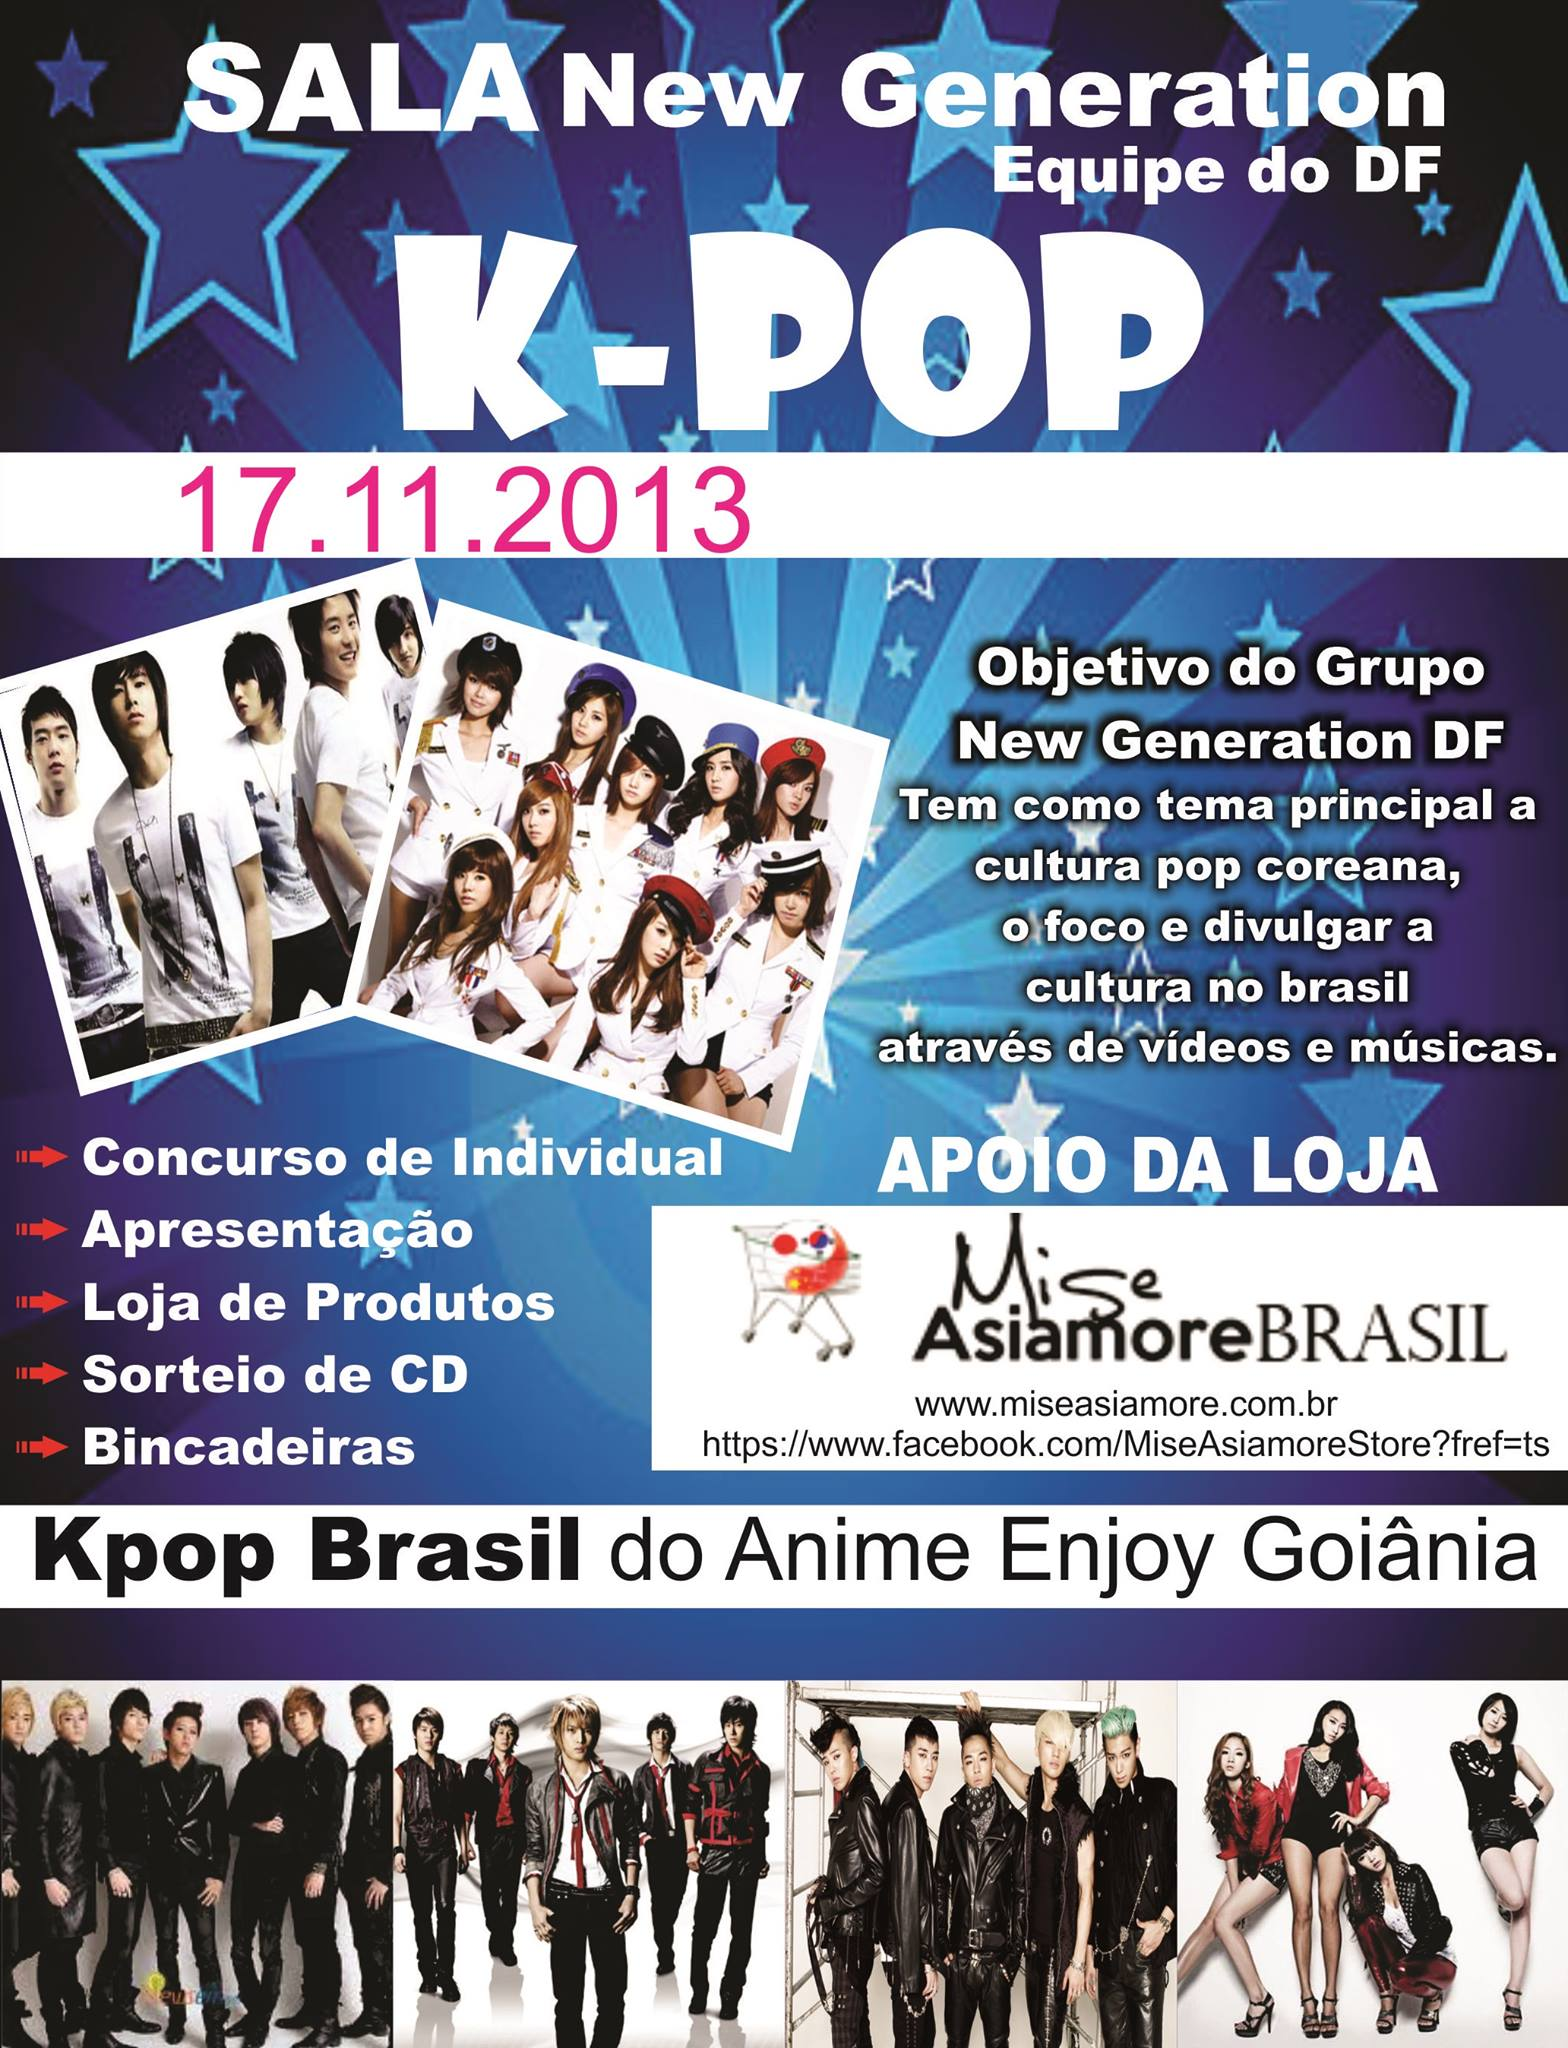 anime enjoy cartaz 1